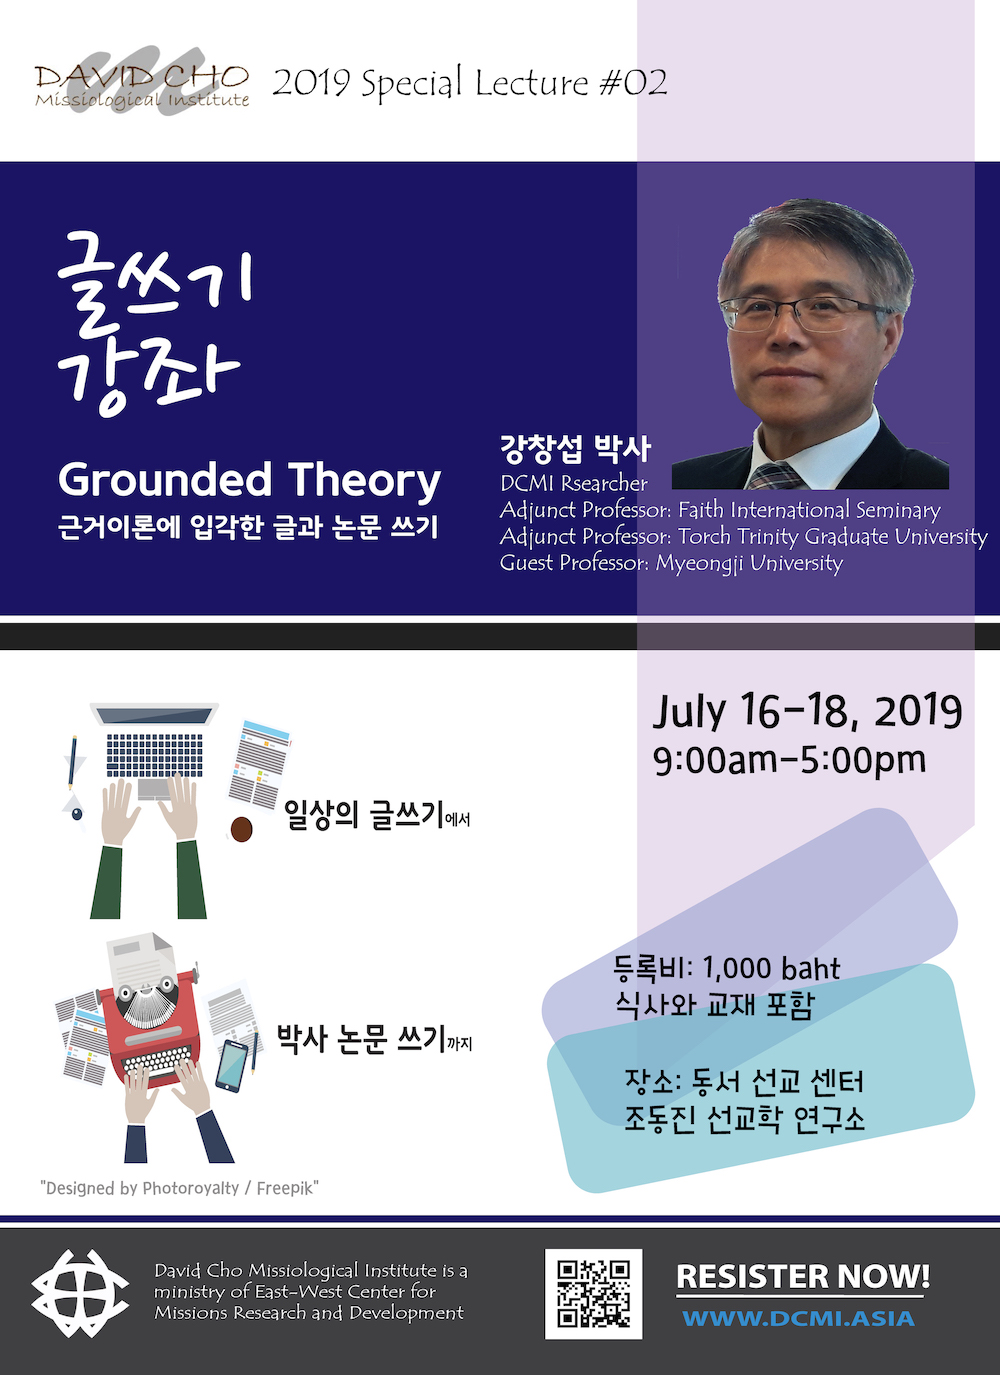 DCMI 2019 Special Lecture #2